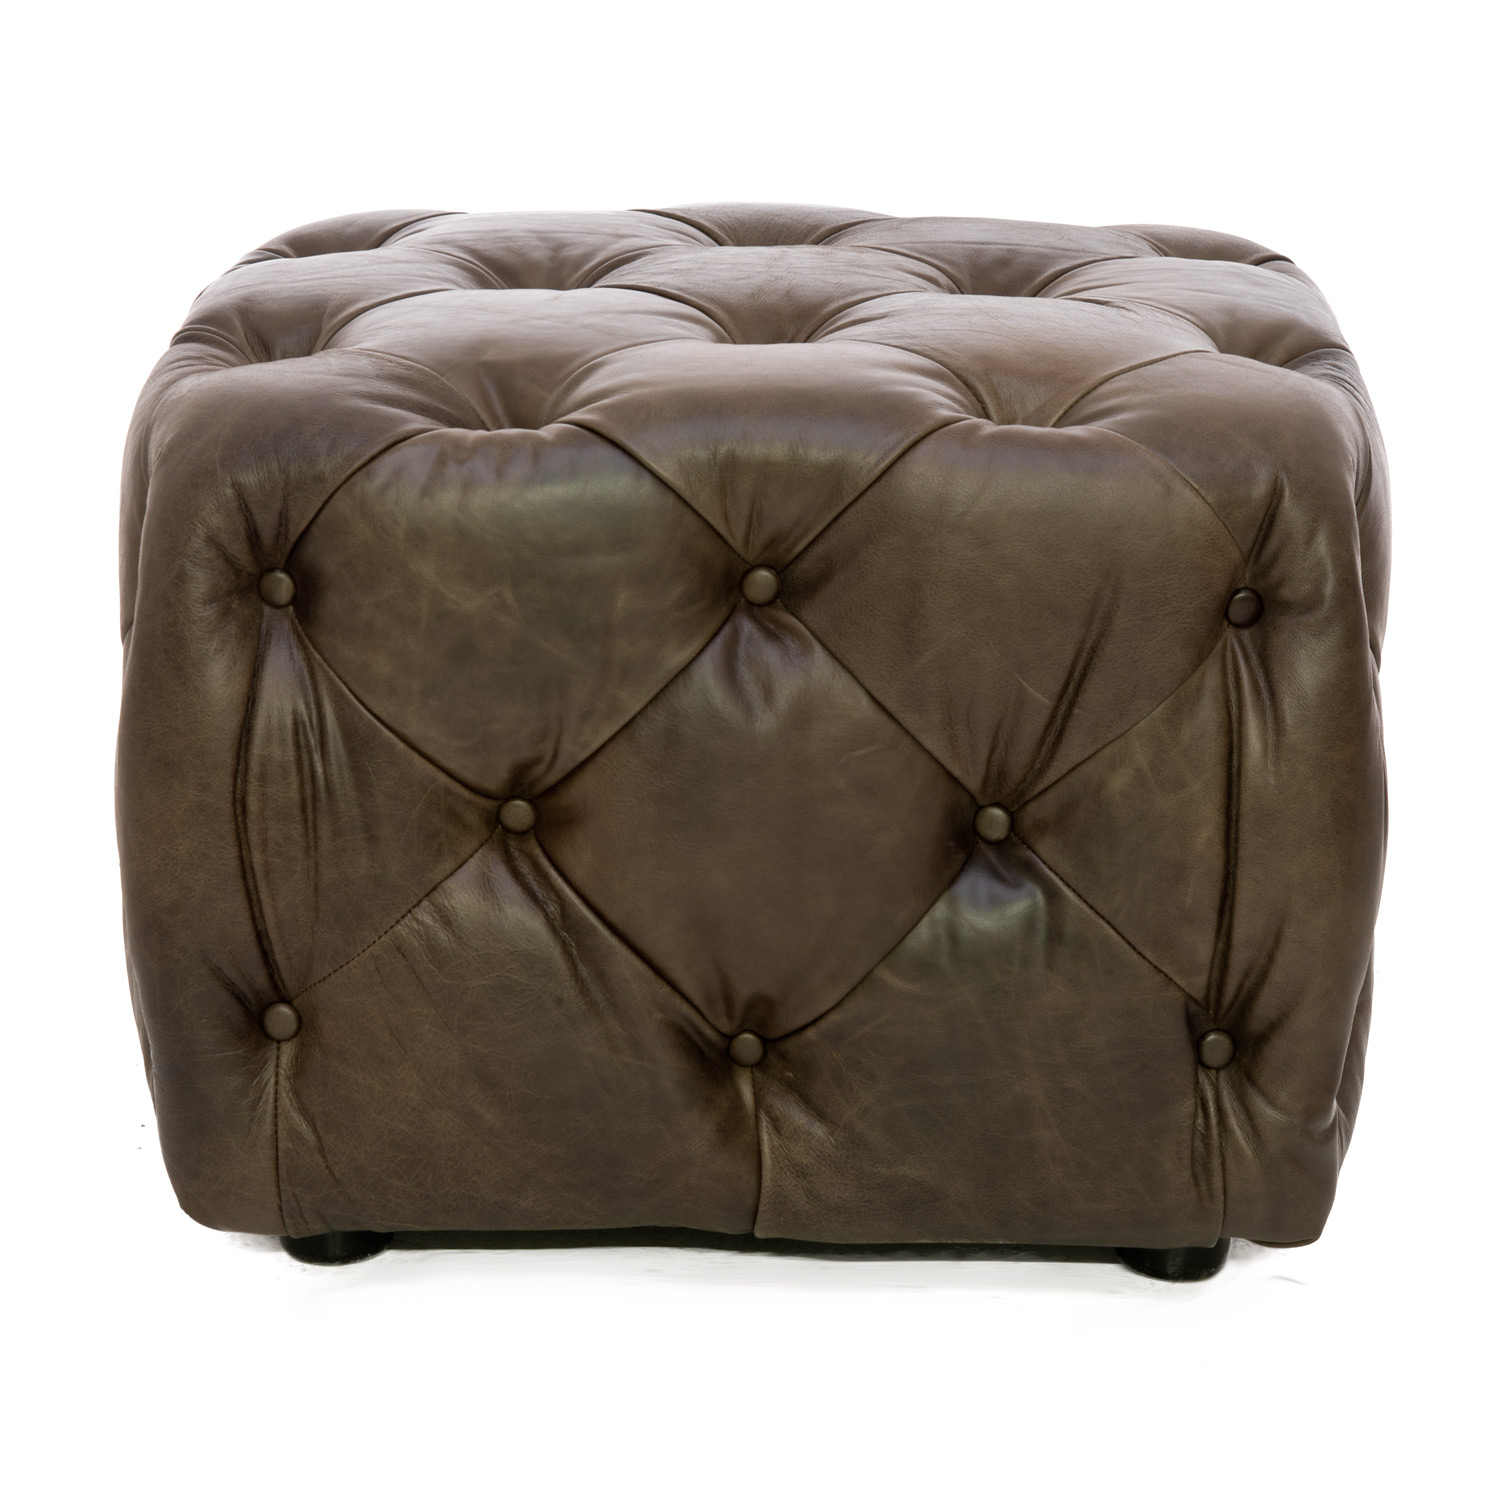 Image of Alexander & James Button Small Leather Footstool